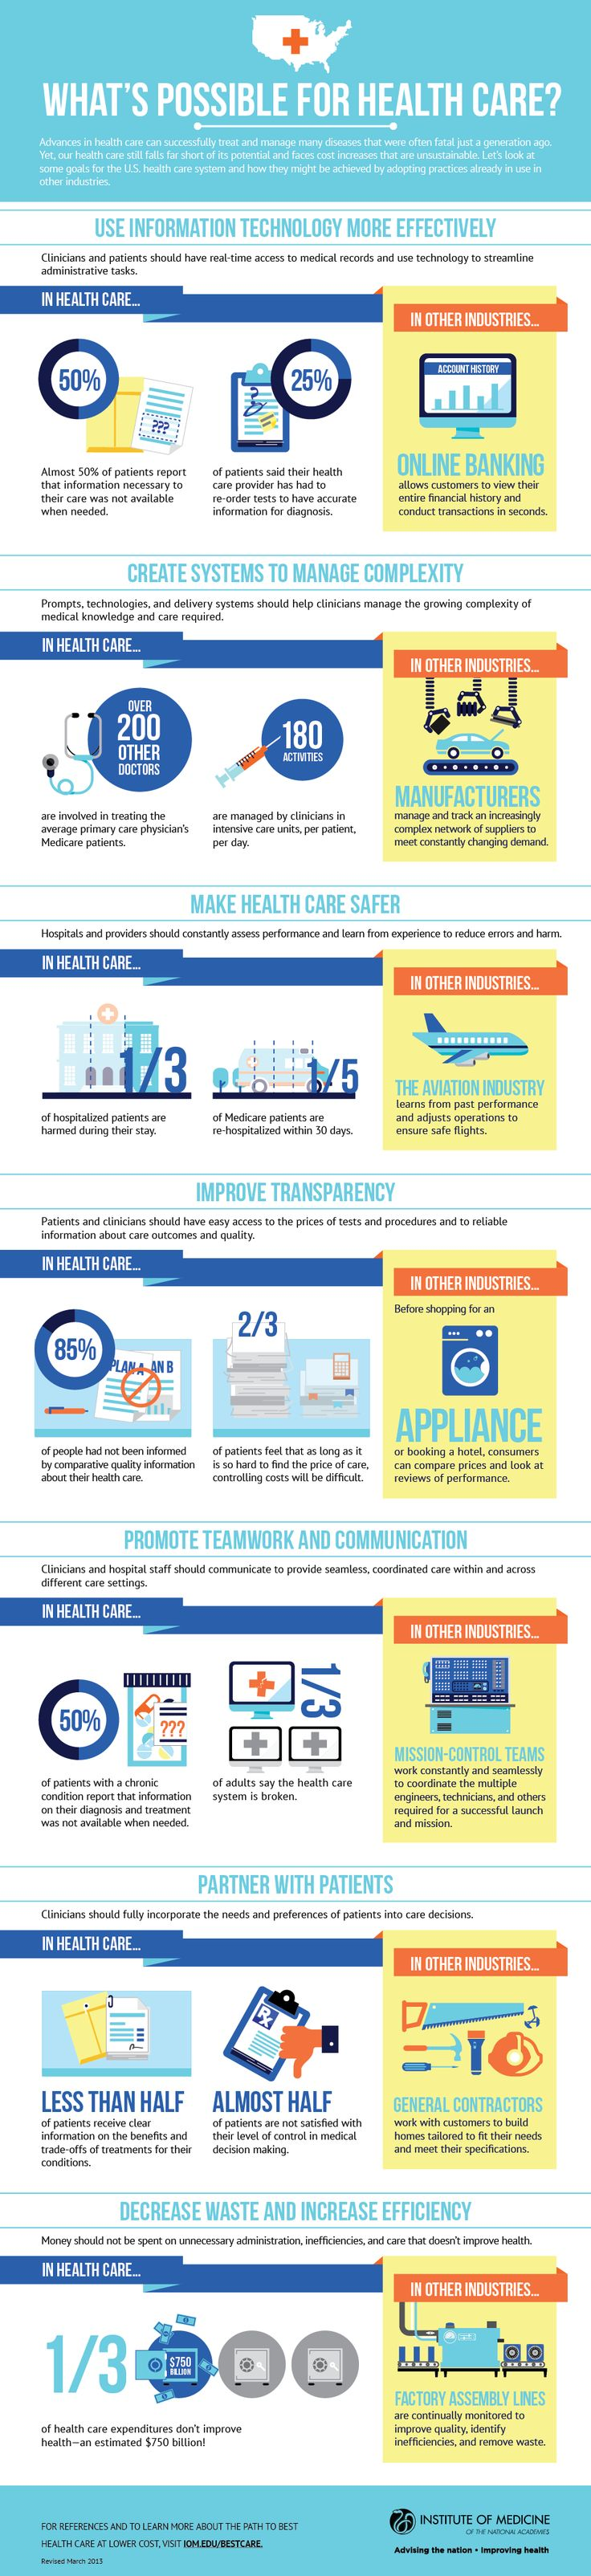 [Infographic] What's possible for health care? A look at some goals for the U.S. health care system and how they might be achieved by adopting practices already in use in other industries.